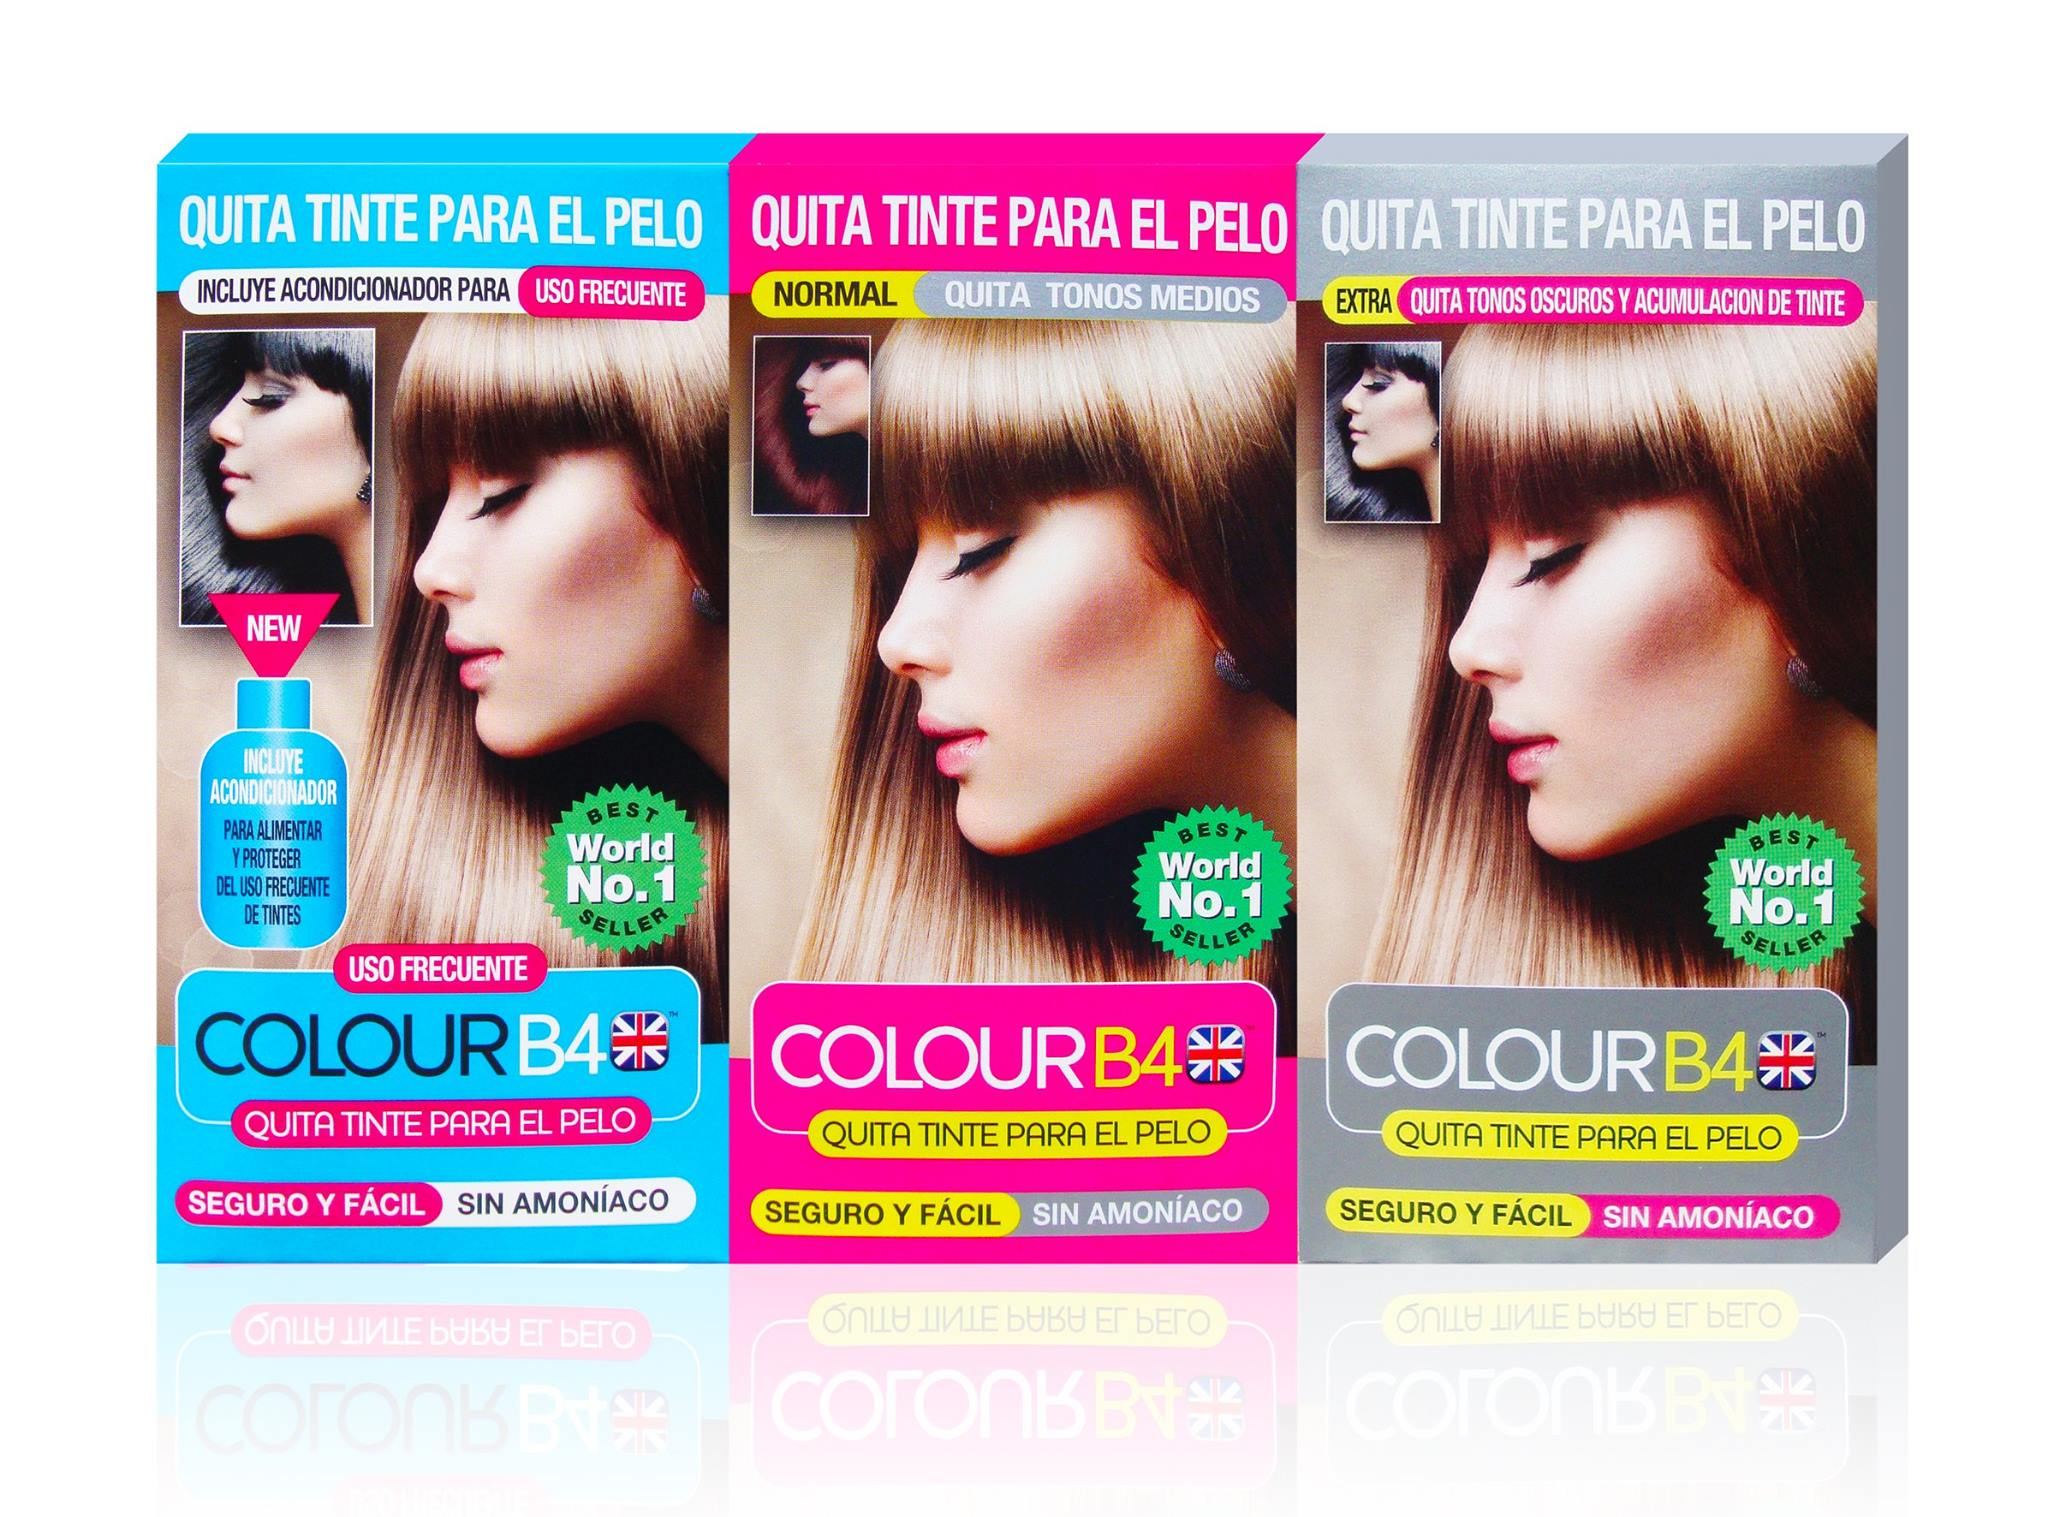 Removedor de color de cabello mexico